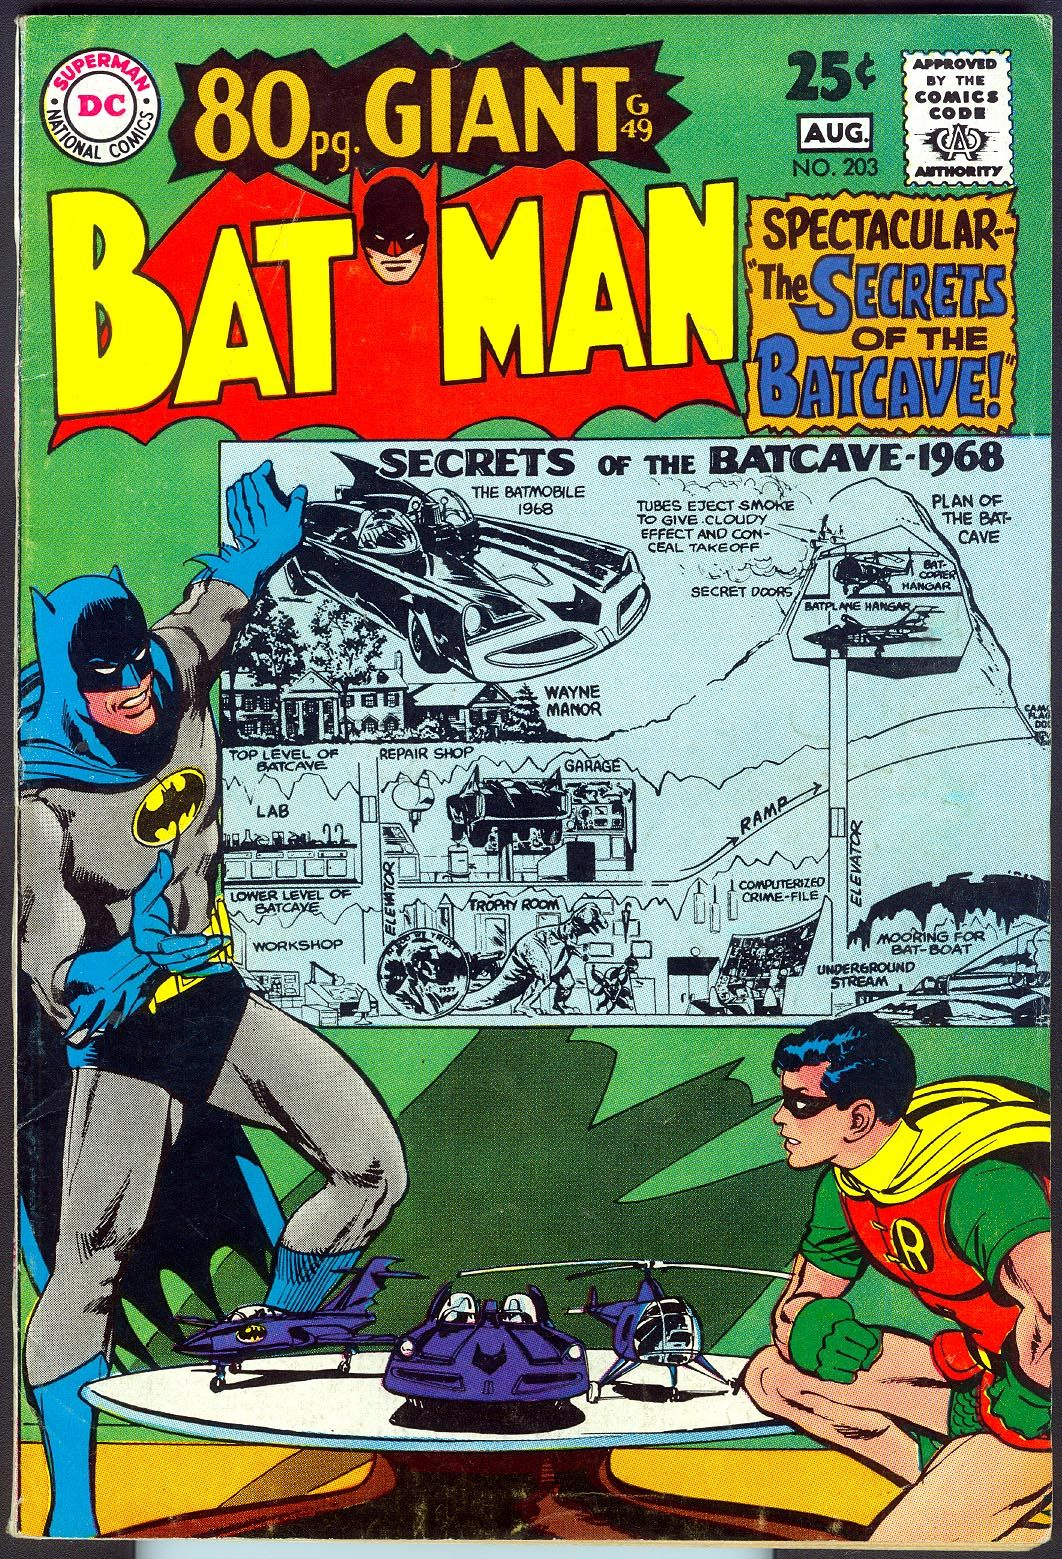 Batman #203 (1968). Cover art: Neal Adams. A collection of some of the top comic book covers featuring BATMAN - album by BATCAVE DWELLER!